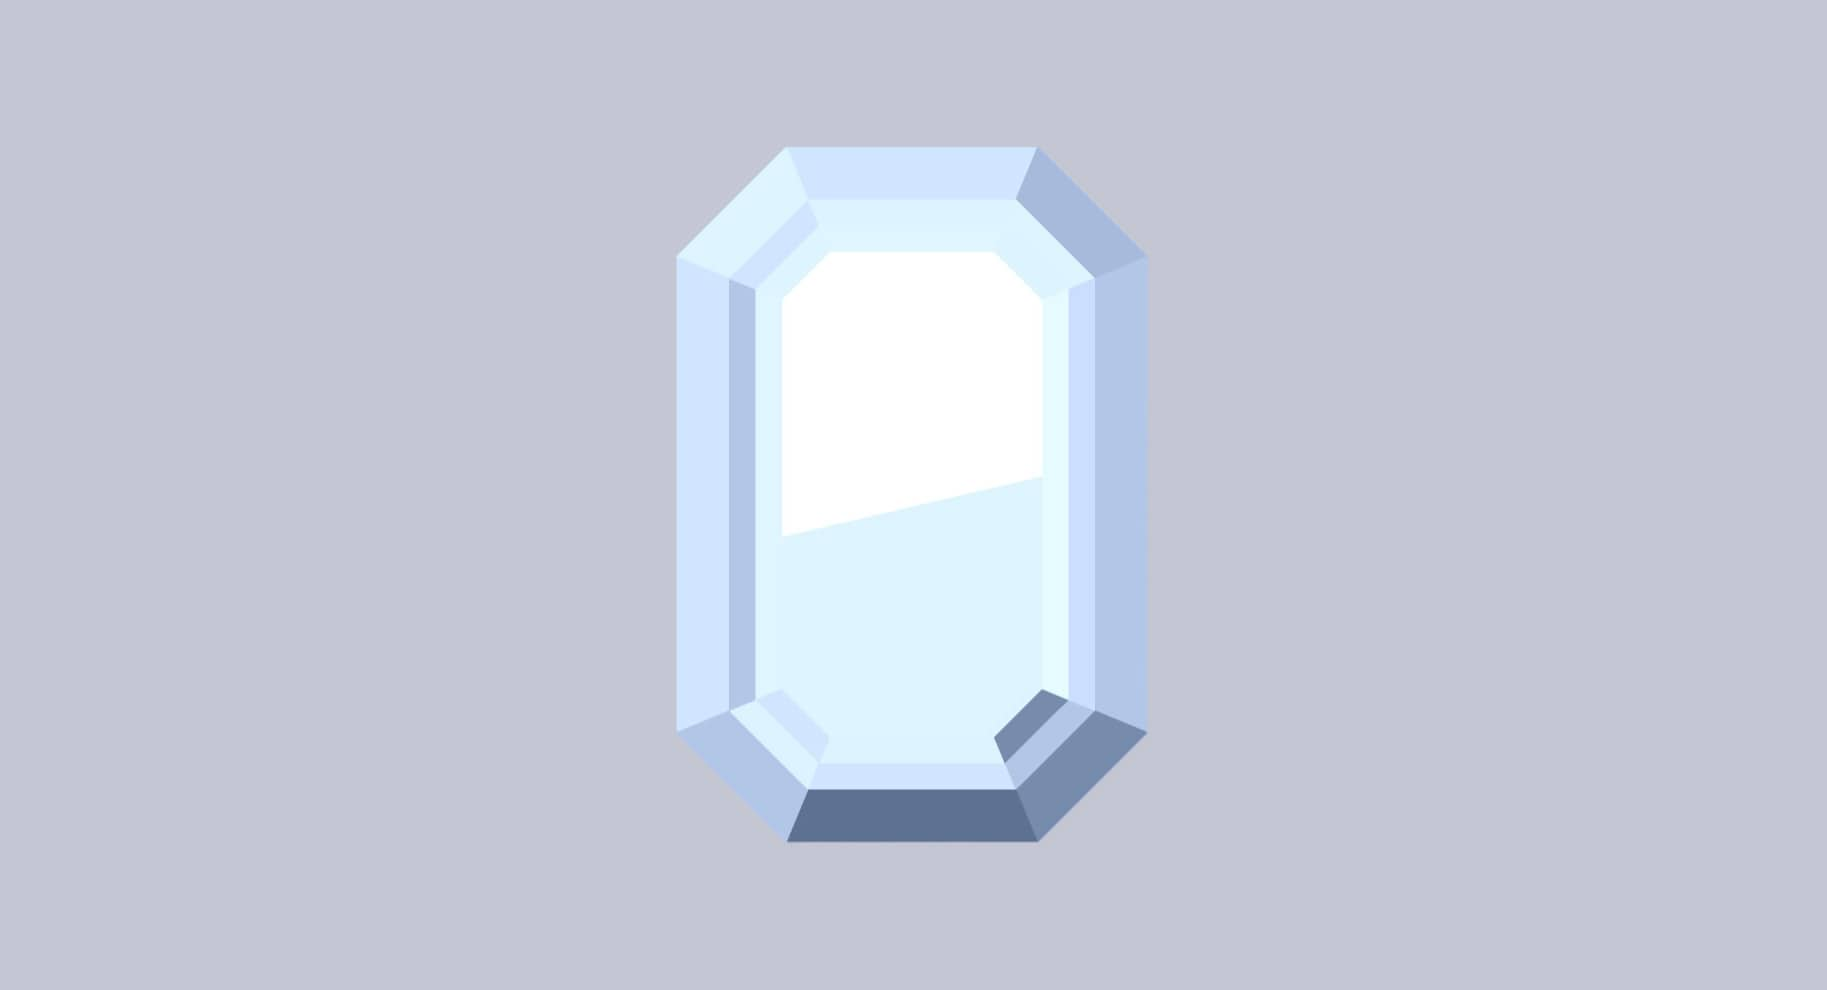 emerald cut diamond illustration